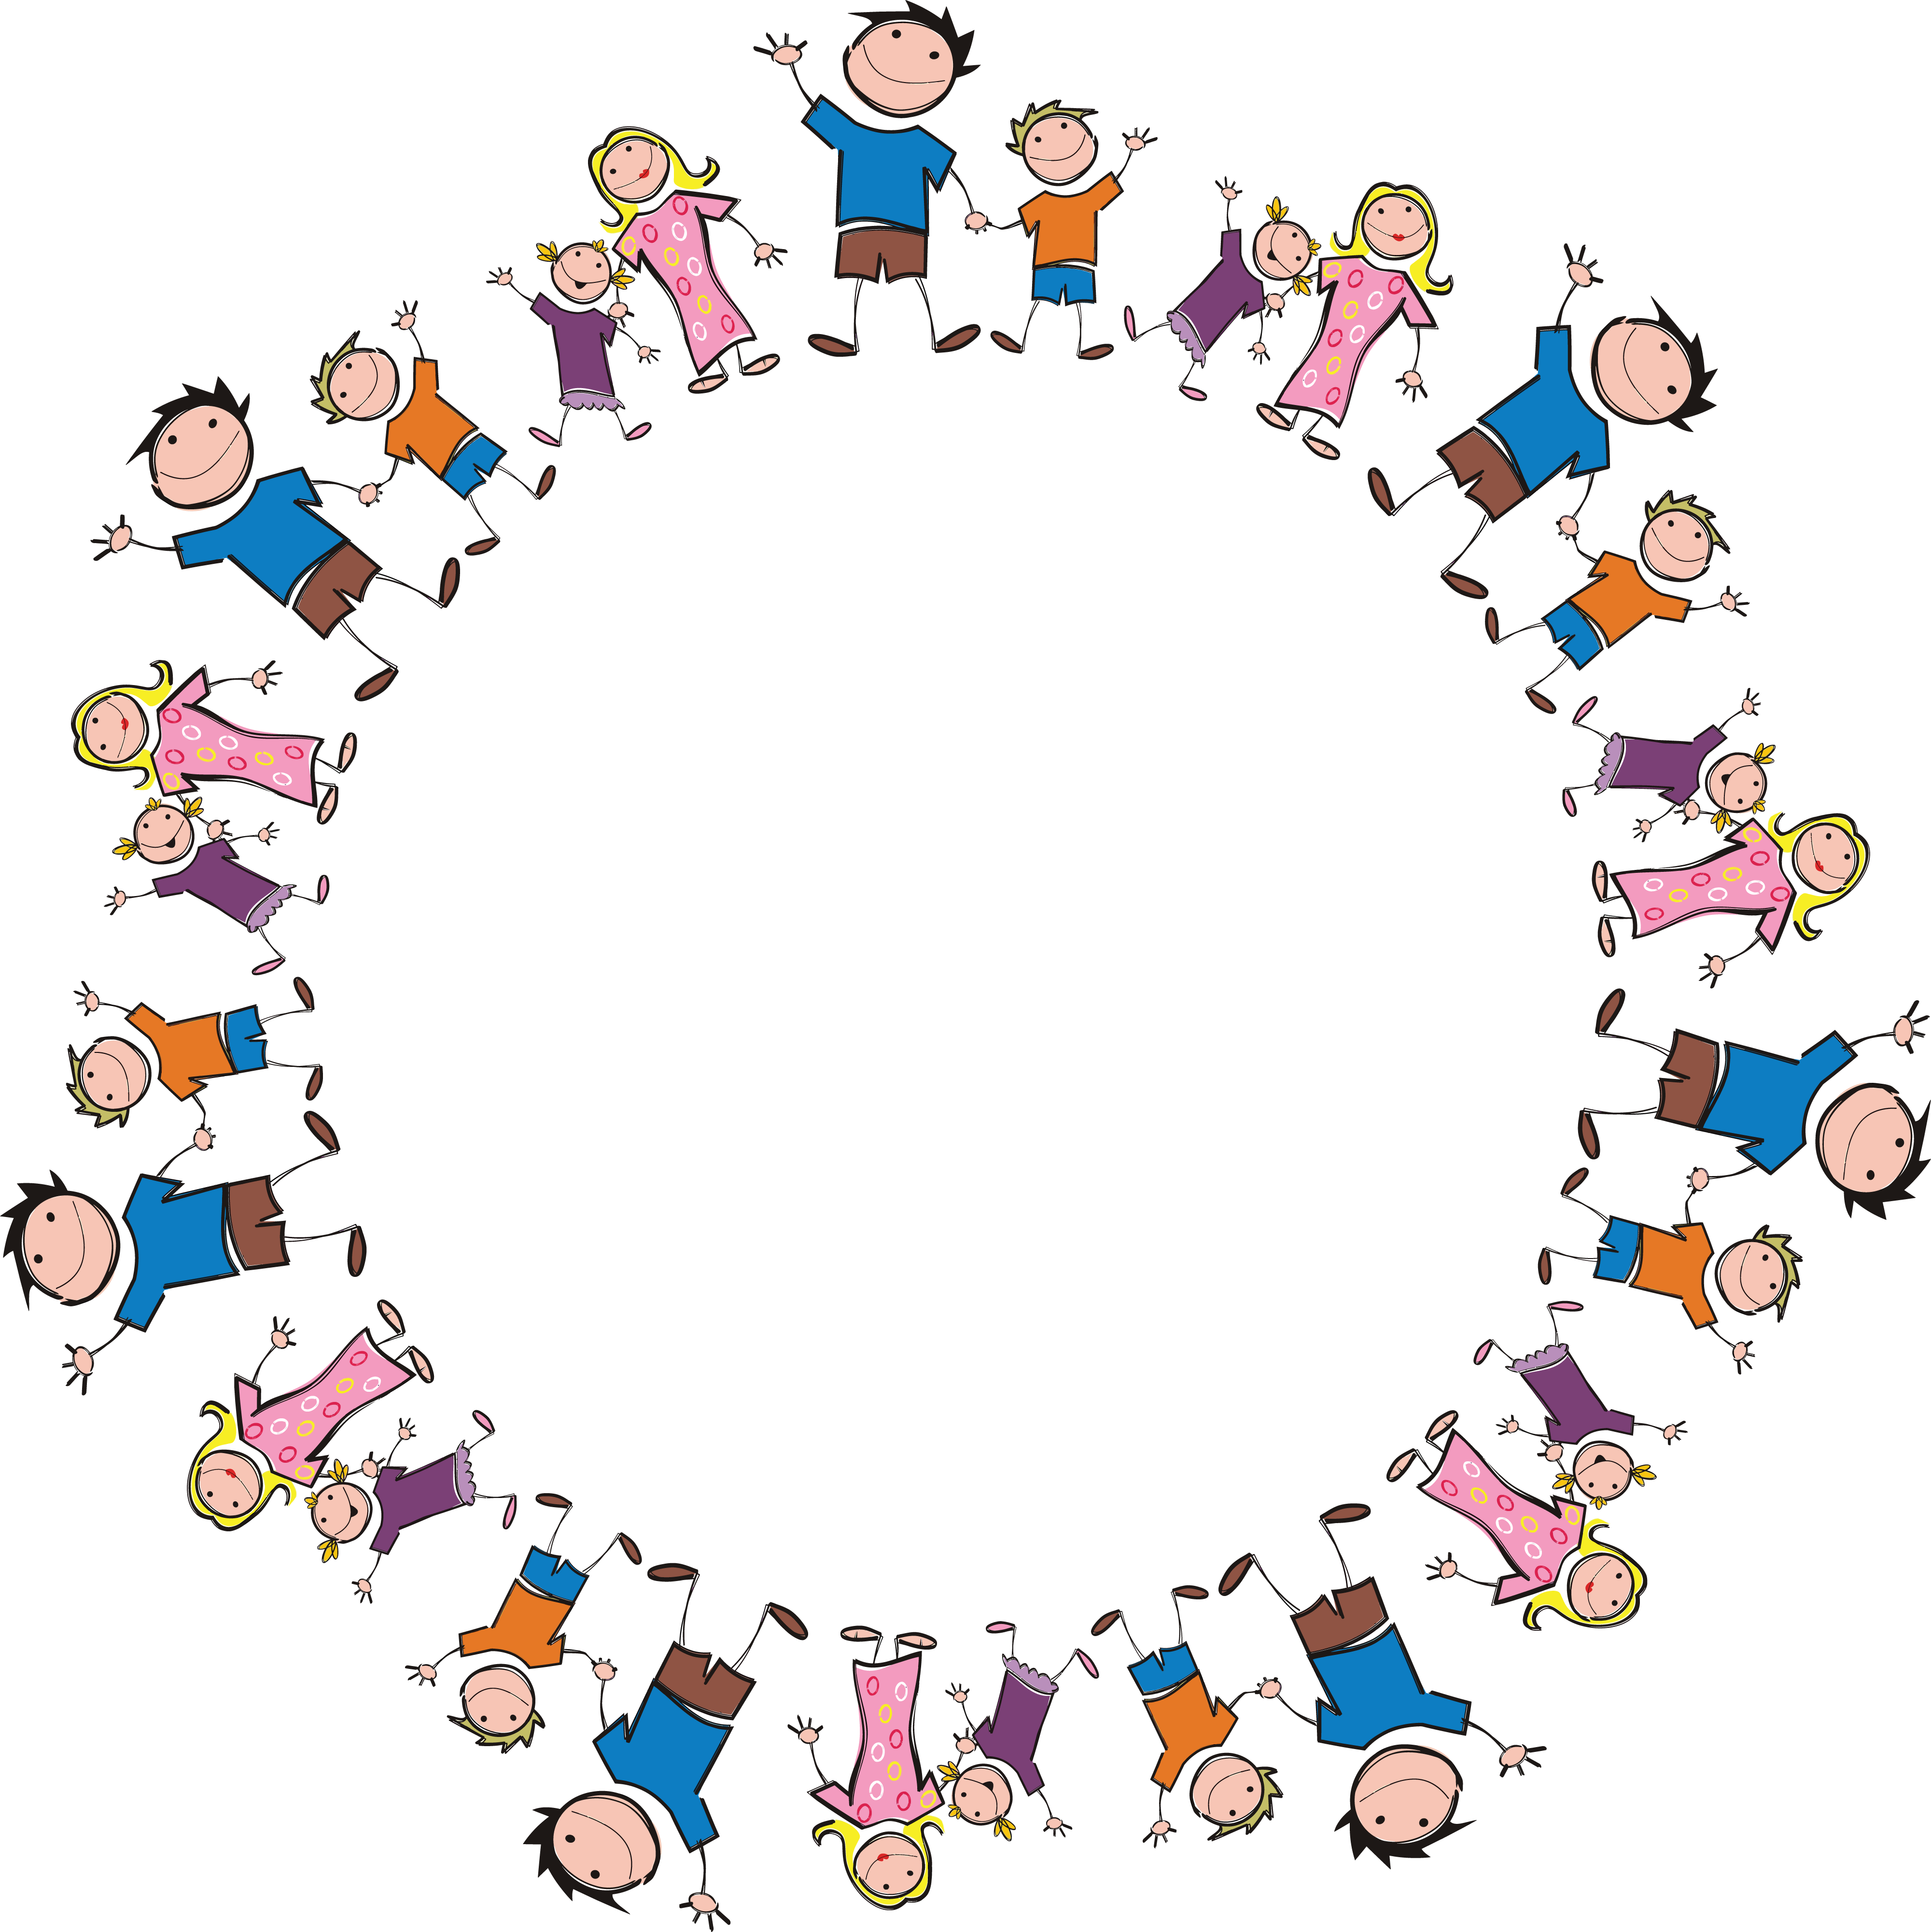 Free Clipart Of A Round Frame Made Stick Family Members 0001409